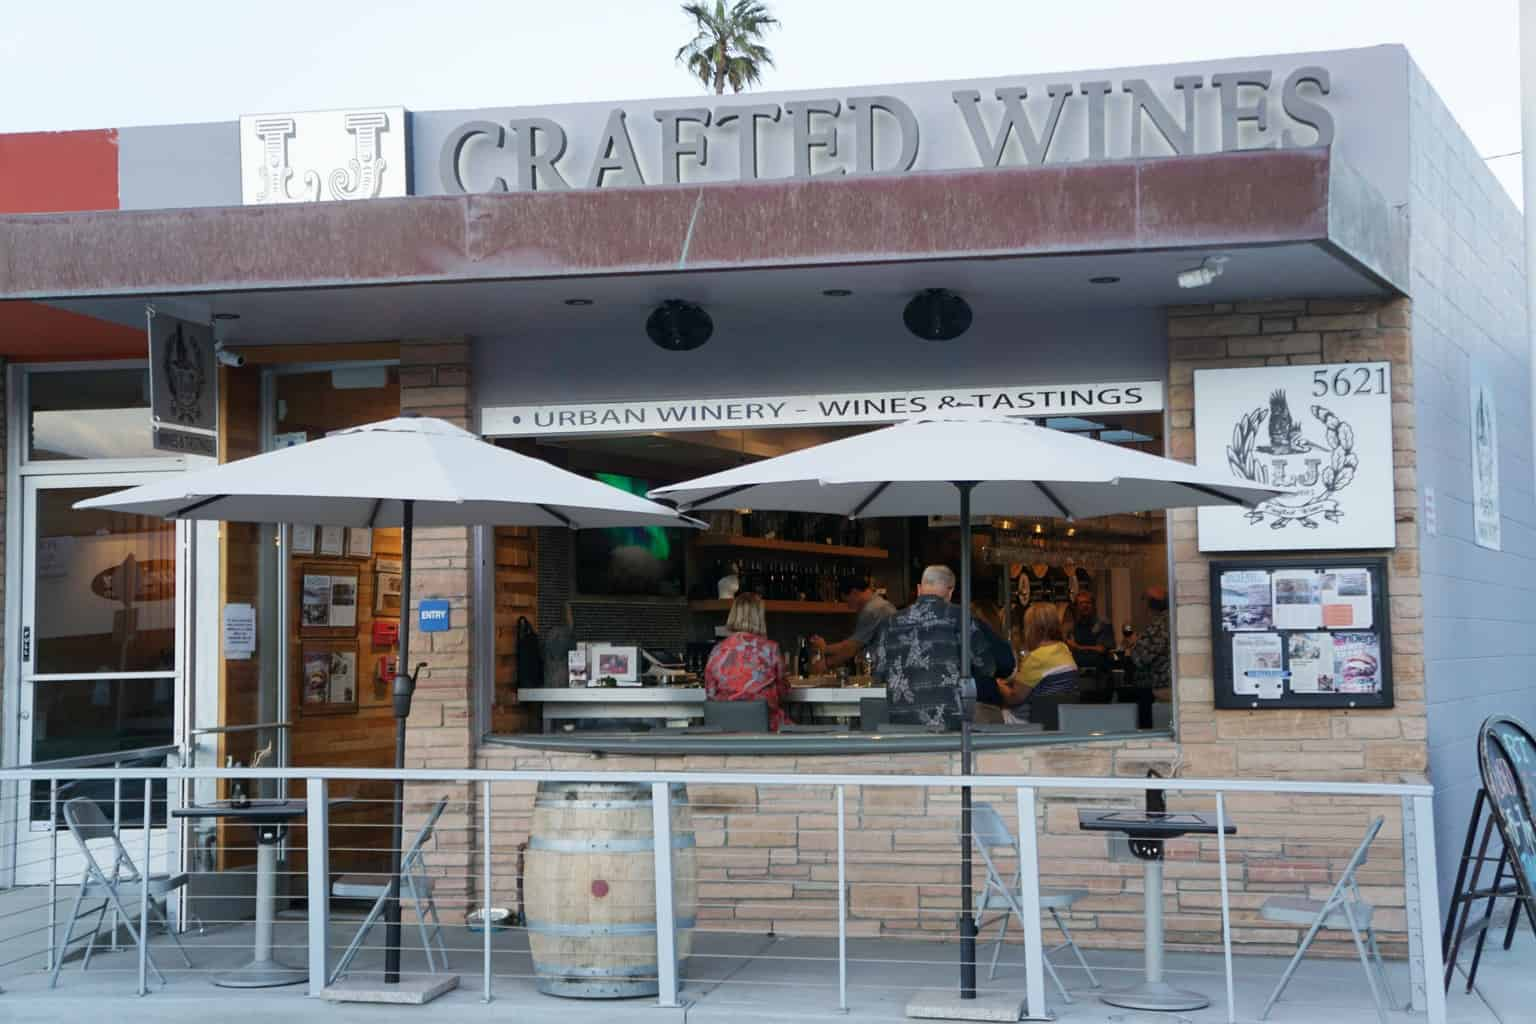 """LJ Crafted Wines is one of over 20 San Diego urban wineries. You may not have heard of it because it's not downtown or in """"Beeralani."""" 